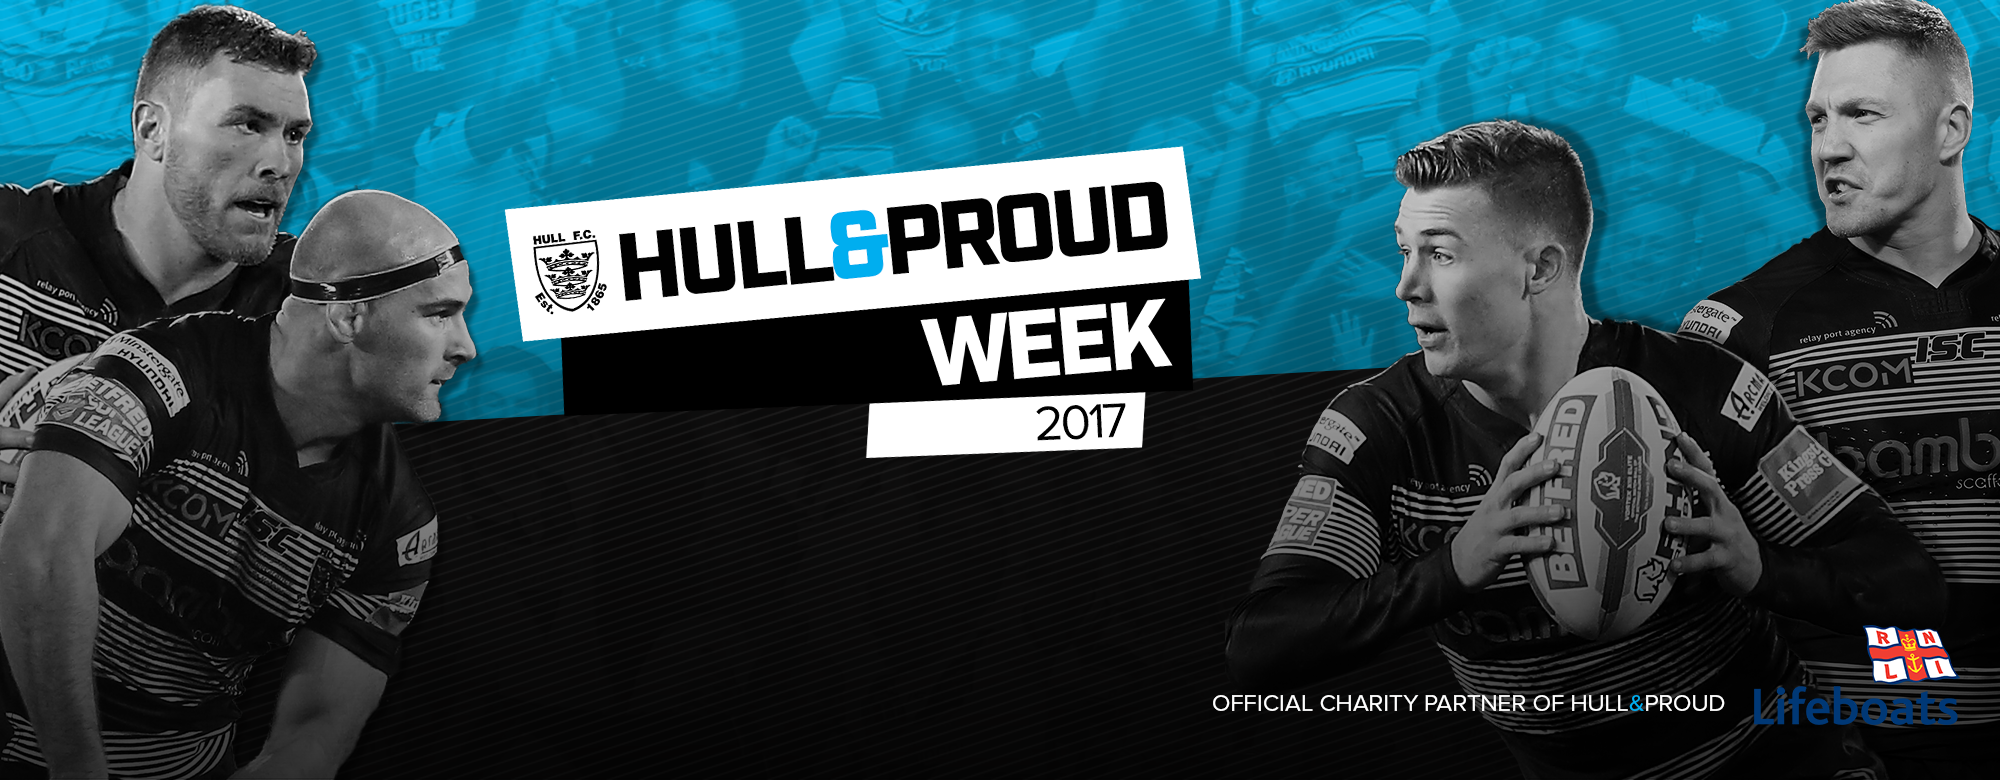 Hull FC Announce Hull&Proud Week 2017!